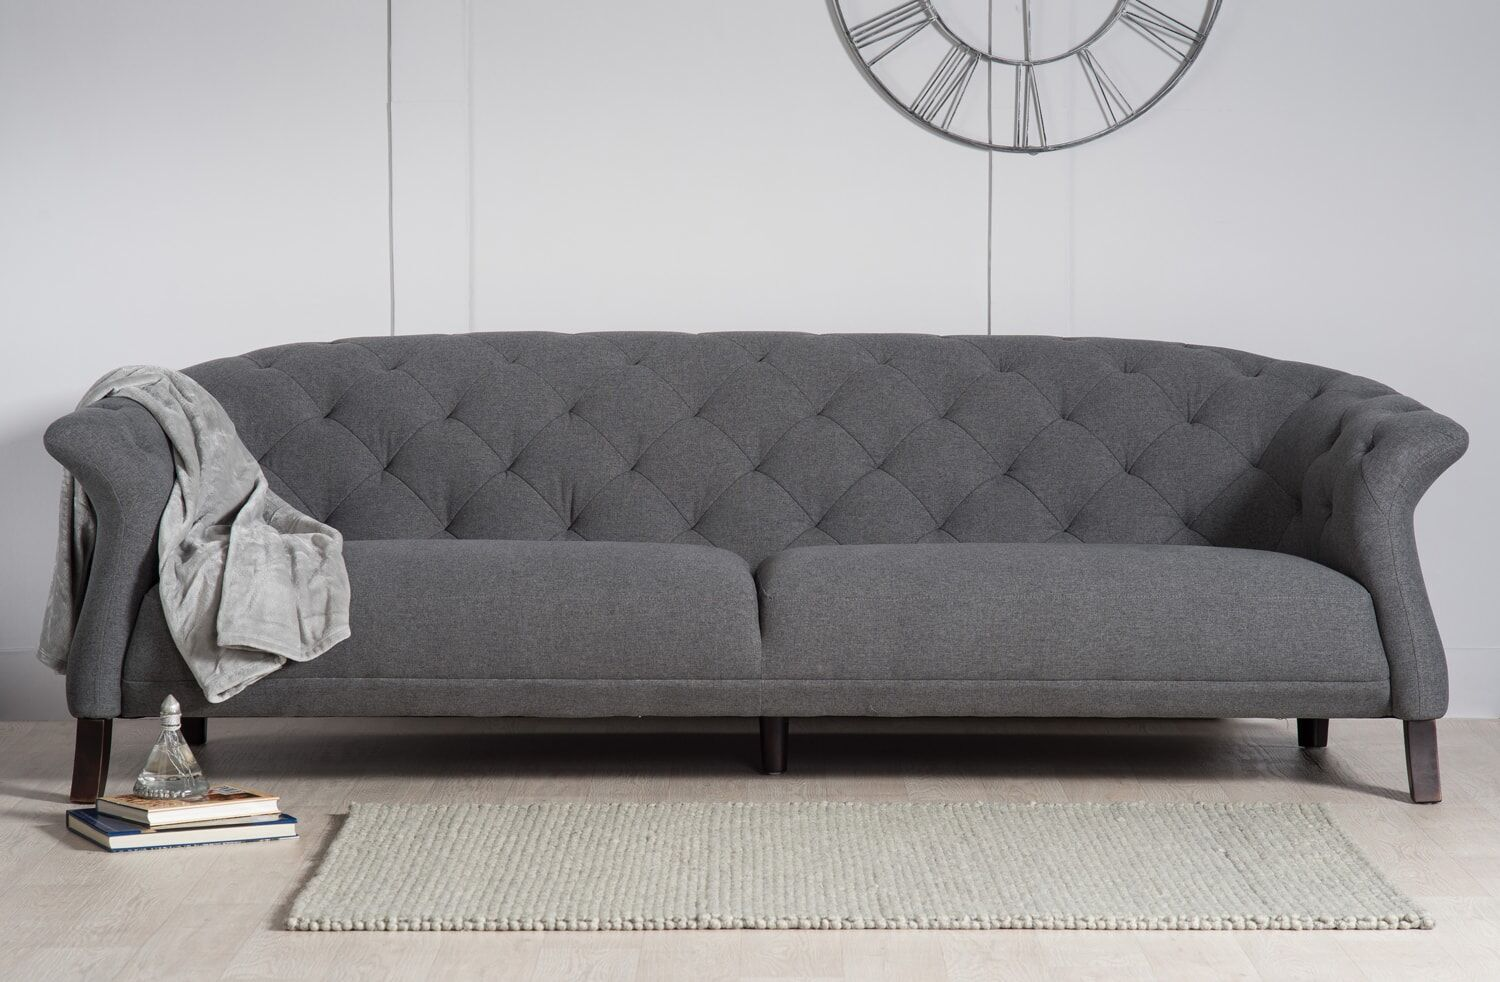 4 Seater Chesterfield Corner Sofa Crispin 4 Seater Modern Chesterfield Sofa, Grey Modern